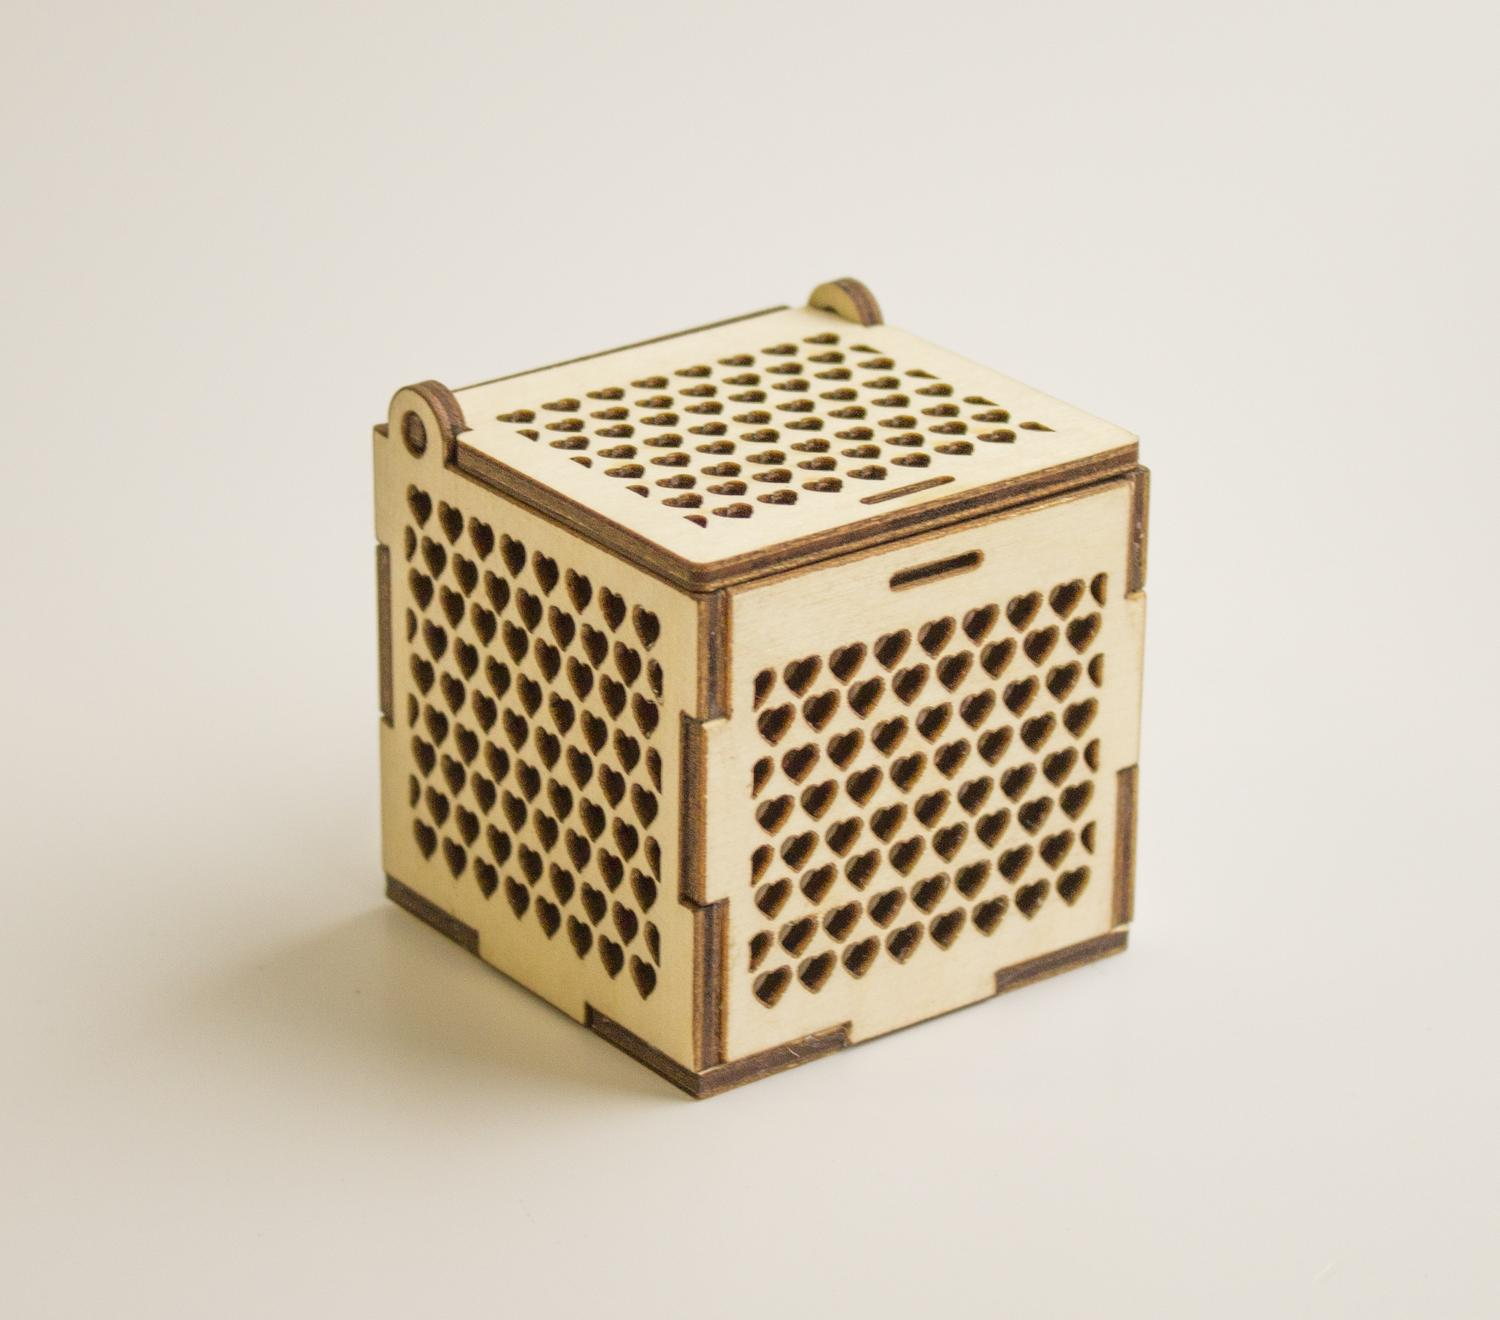 Laser Cut Wooden Jewelry Box With Hearts Free Vector